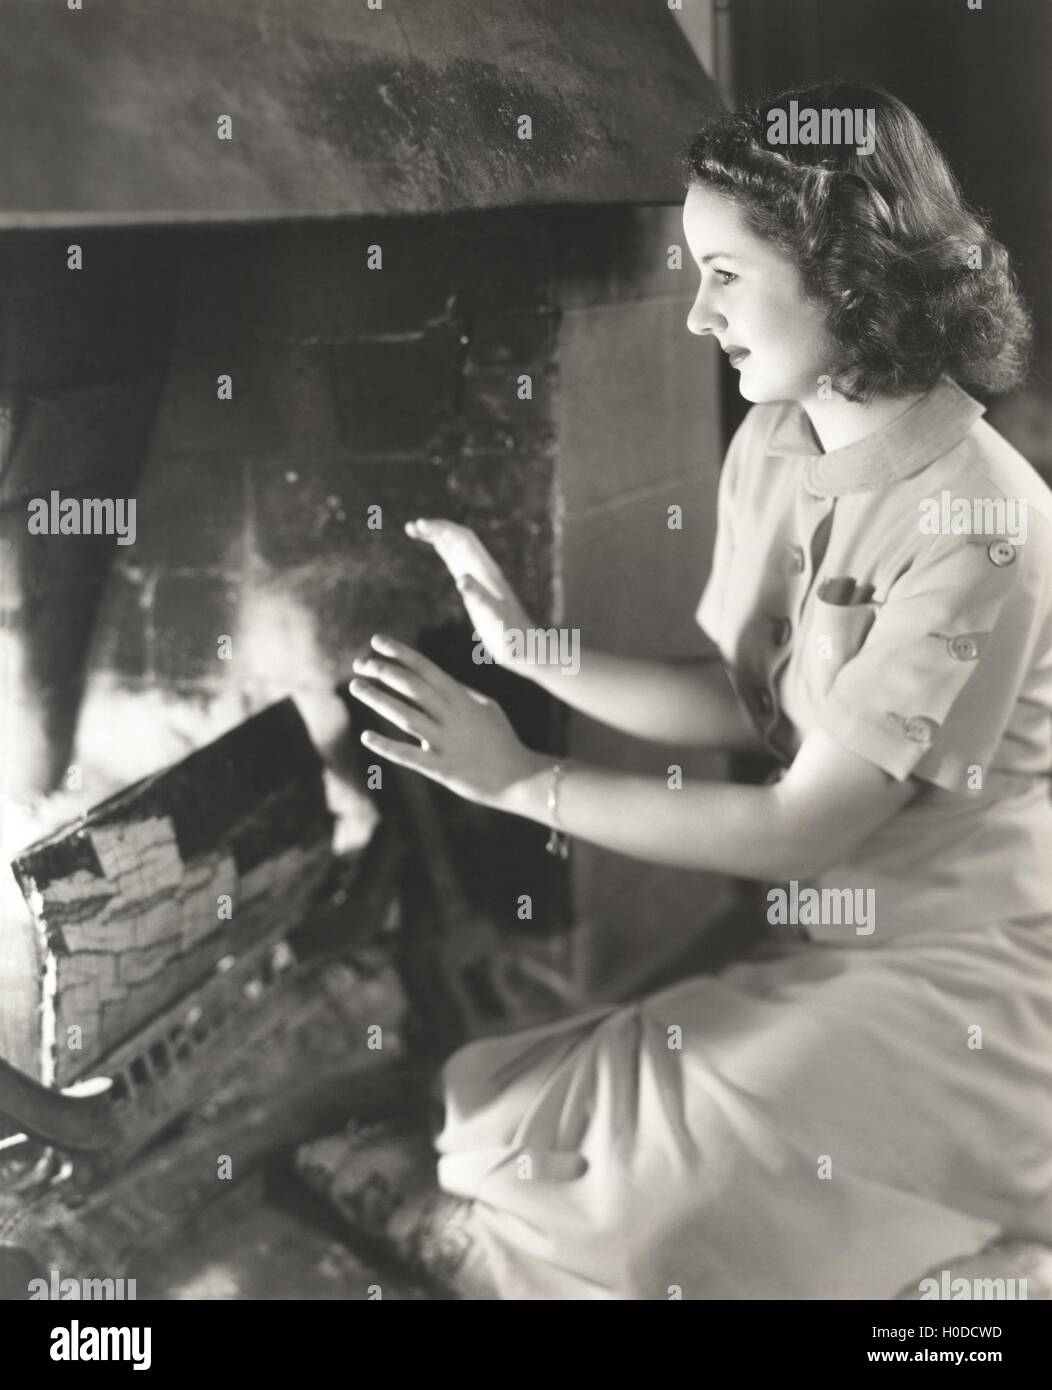 Woman warming her hands by the fireplace - Stock Image